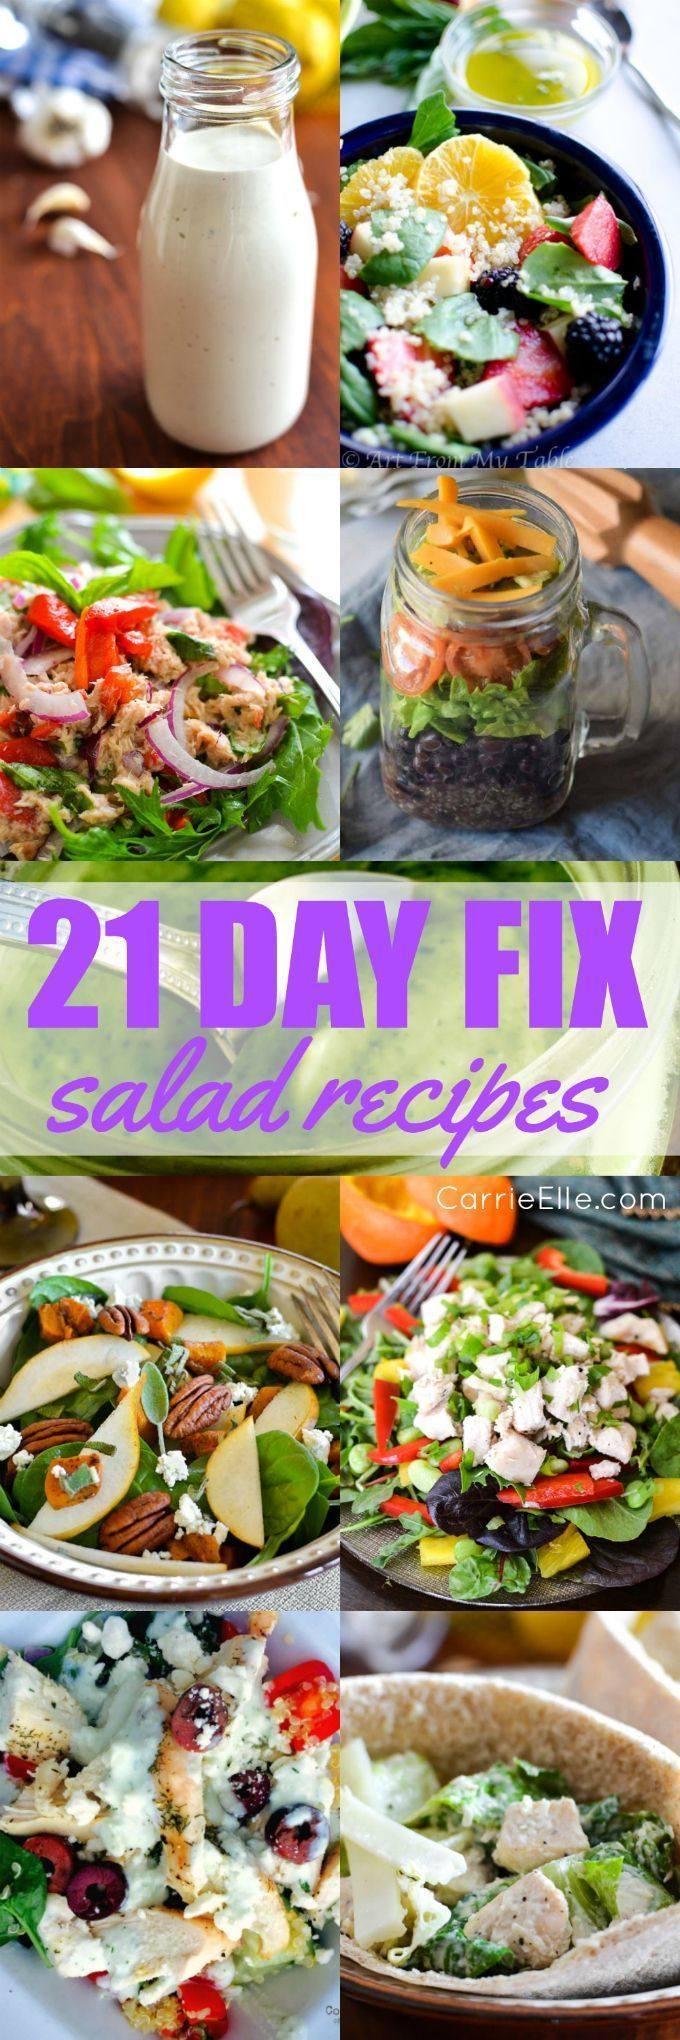 Best Exercise To Lose Weight Lunch Time Recipes 21 Day Fix Menu